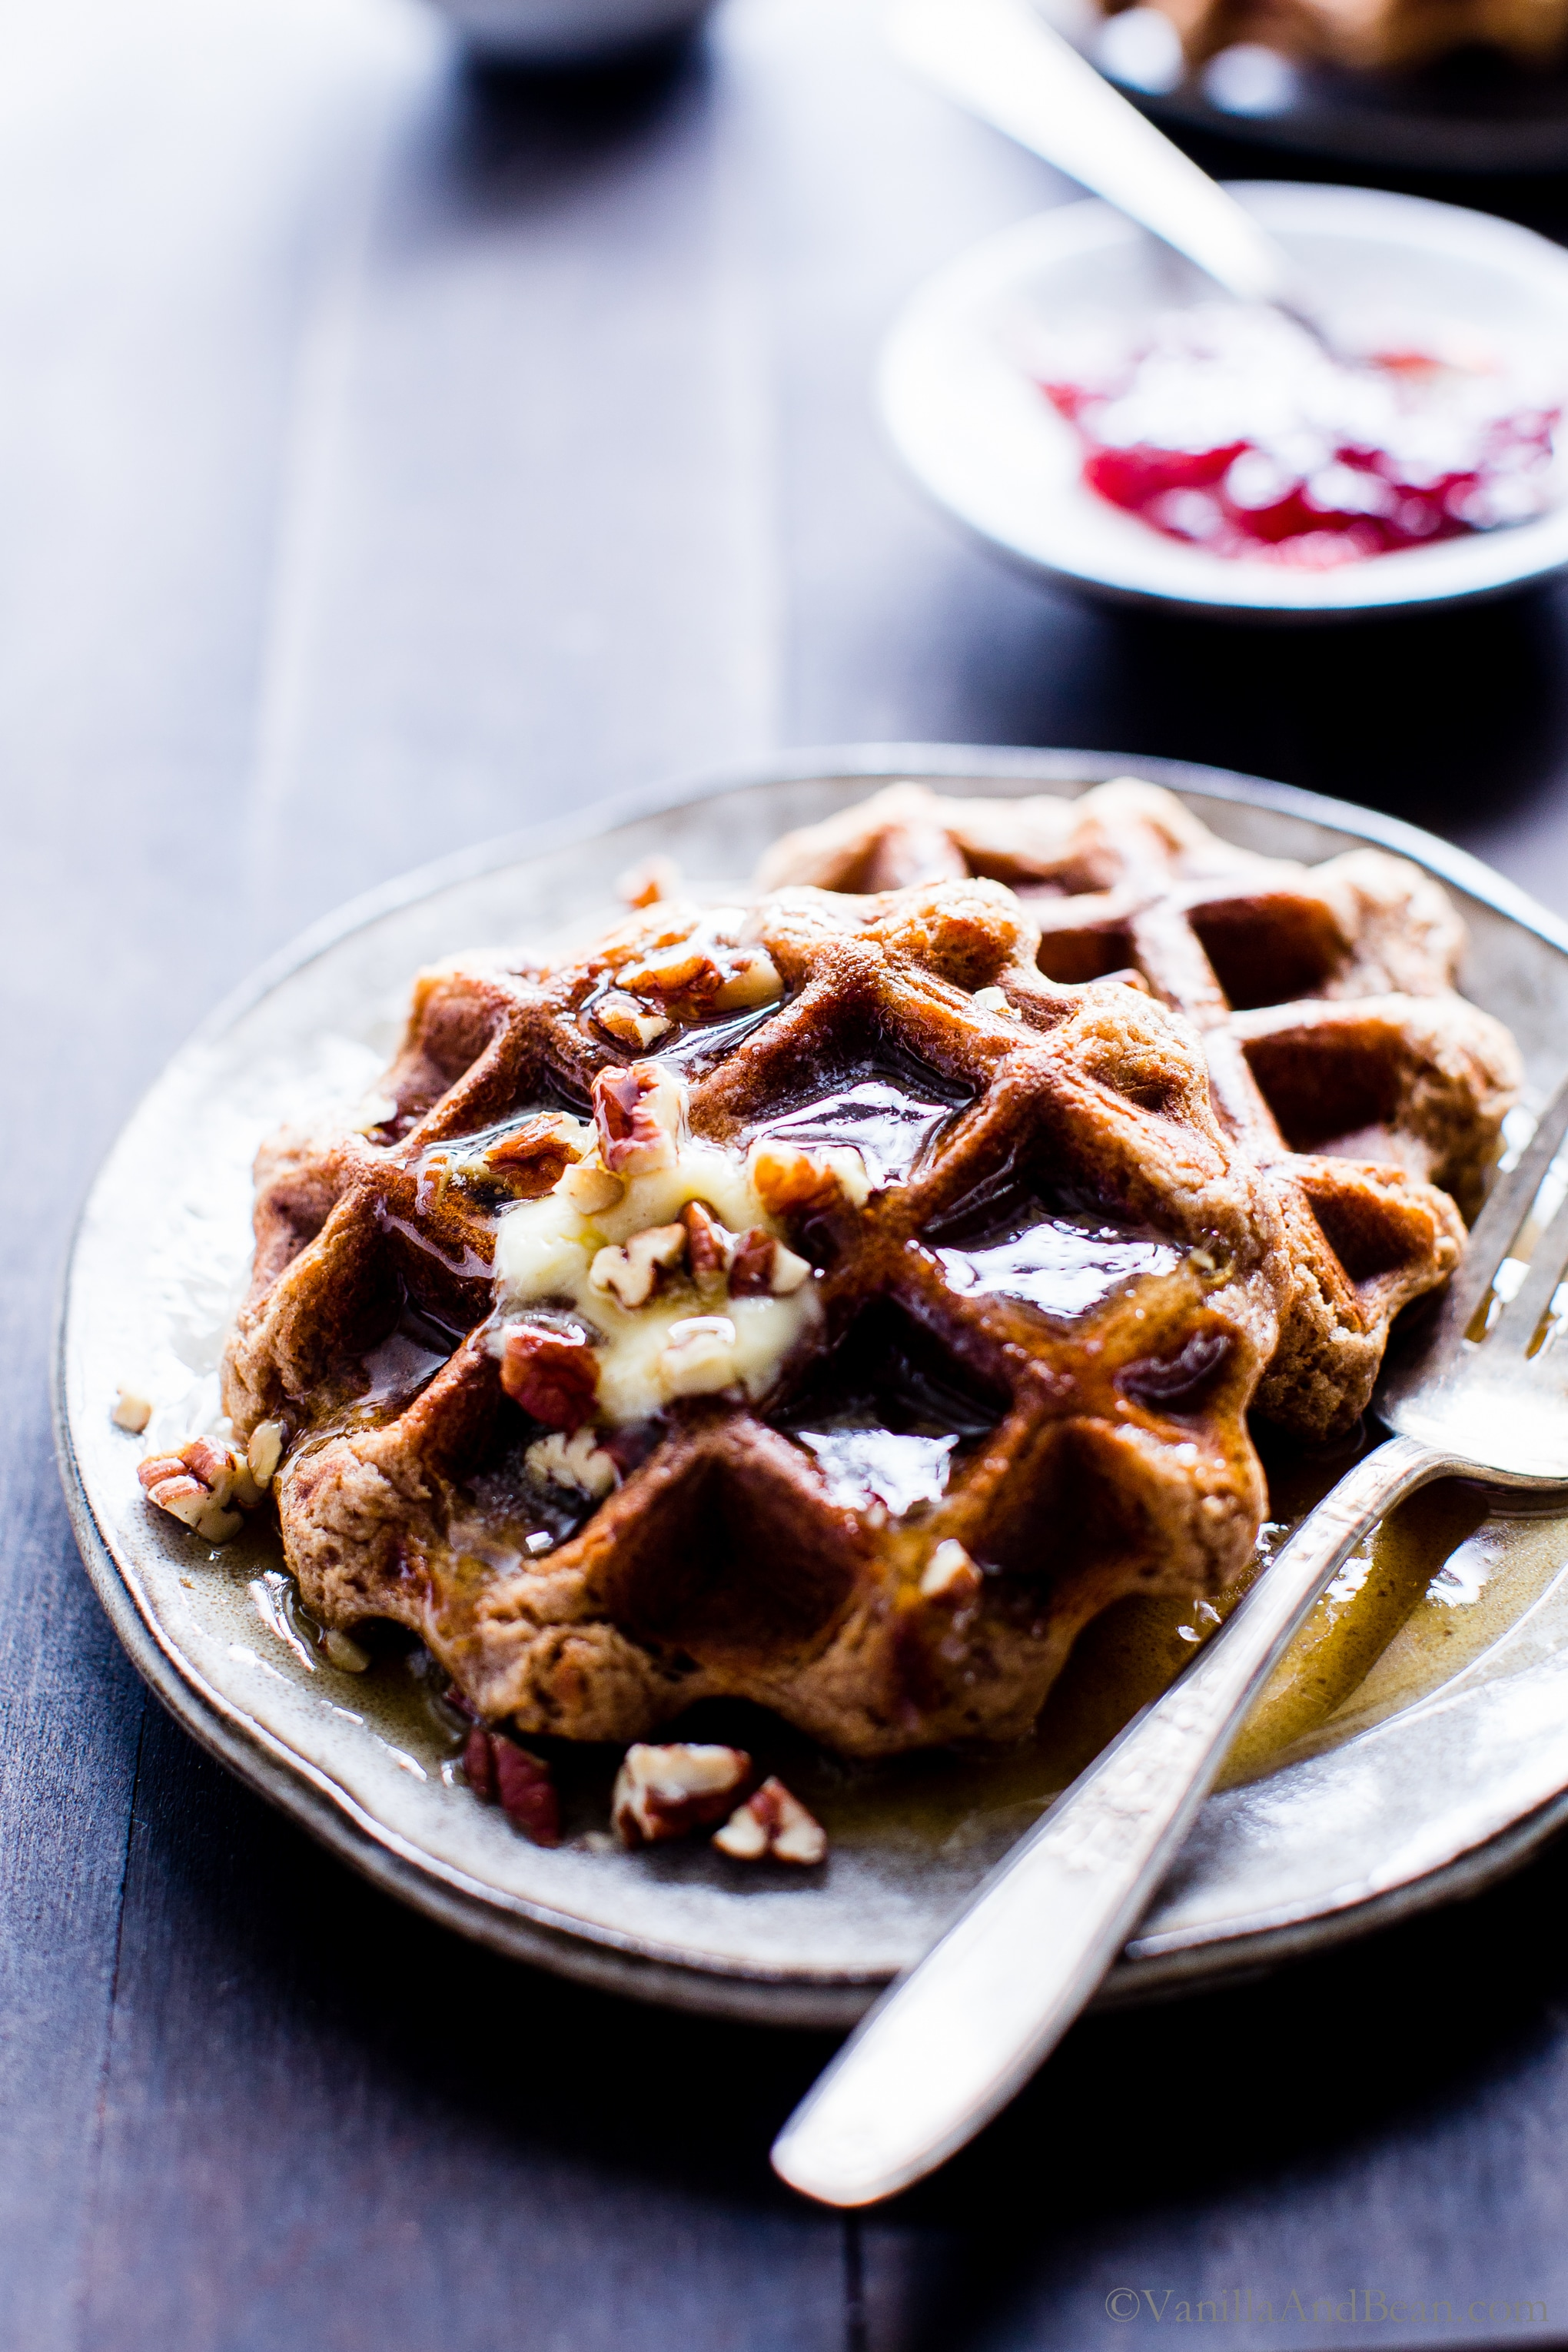 Easy weekend mornings or pull from the freezer weekday ready? Yes please! Banana-Pecan Oat Waffles are whipped up in the blender or food processor and are freezer friendly. Hooray! #vegan #Eggfree #DairyFree + #glutenfree